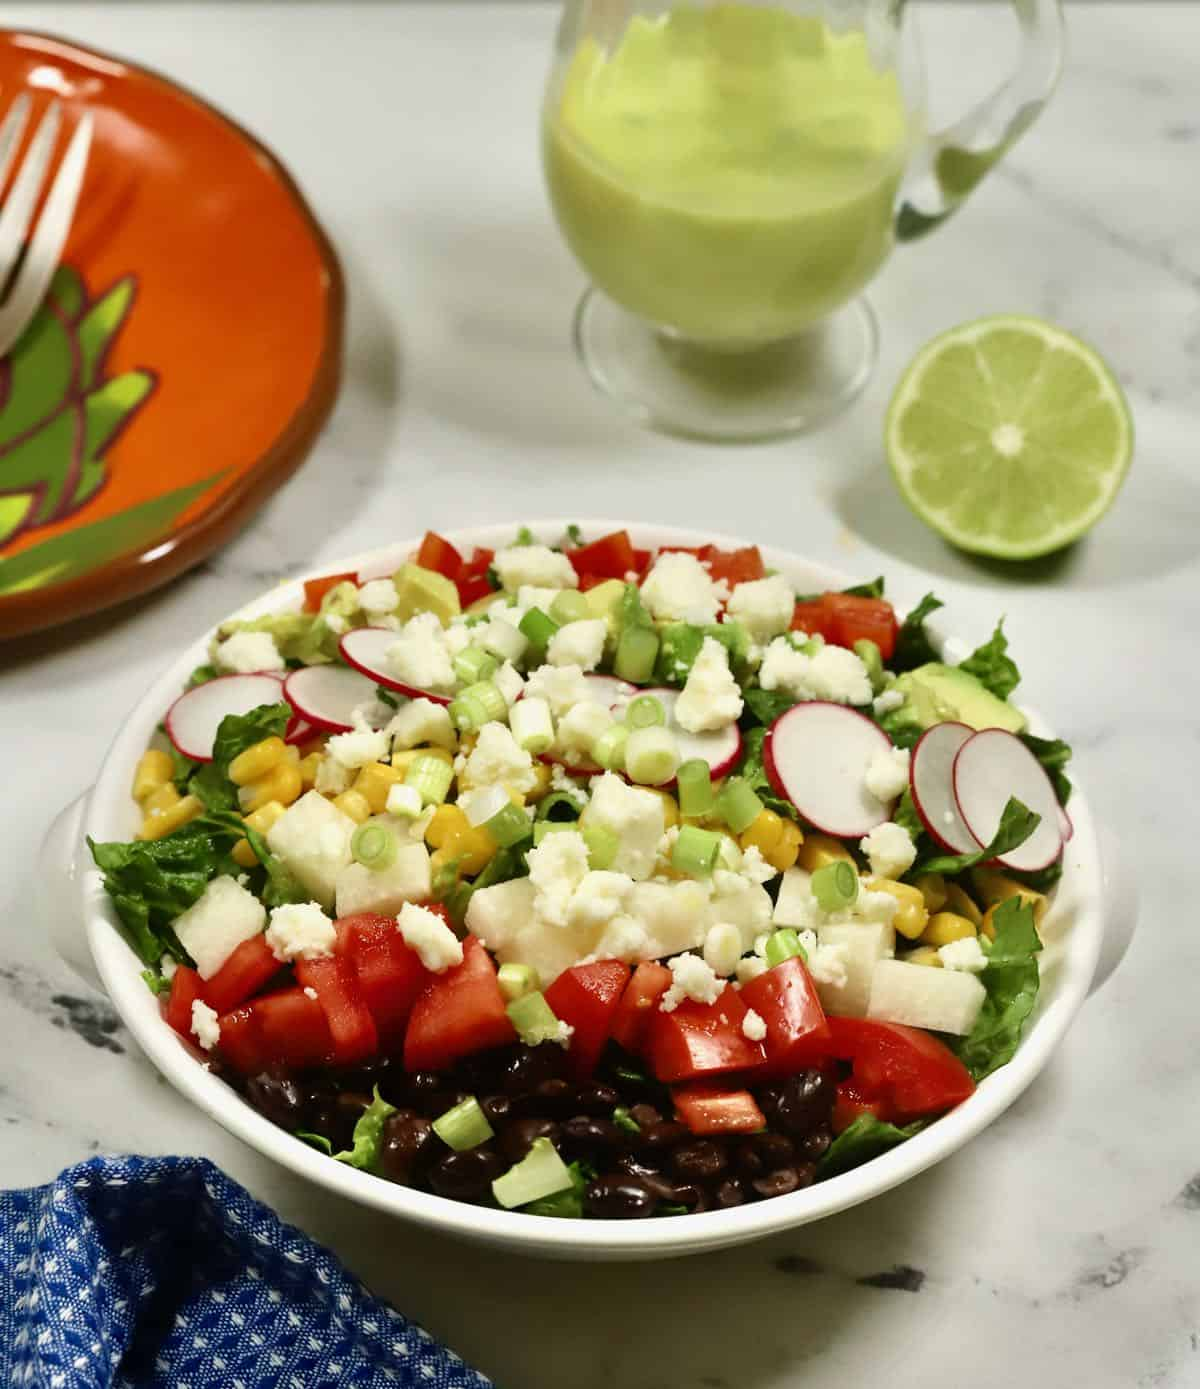 A large colorful salad with a small pitcher of dressing.